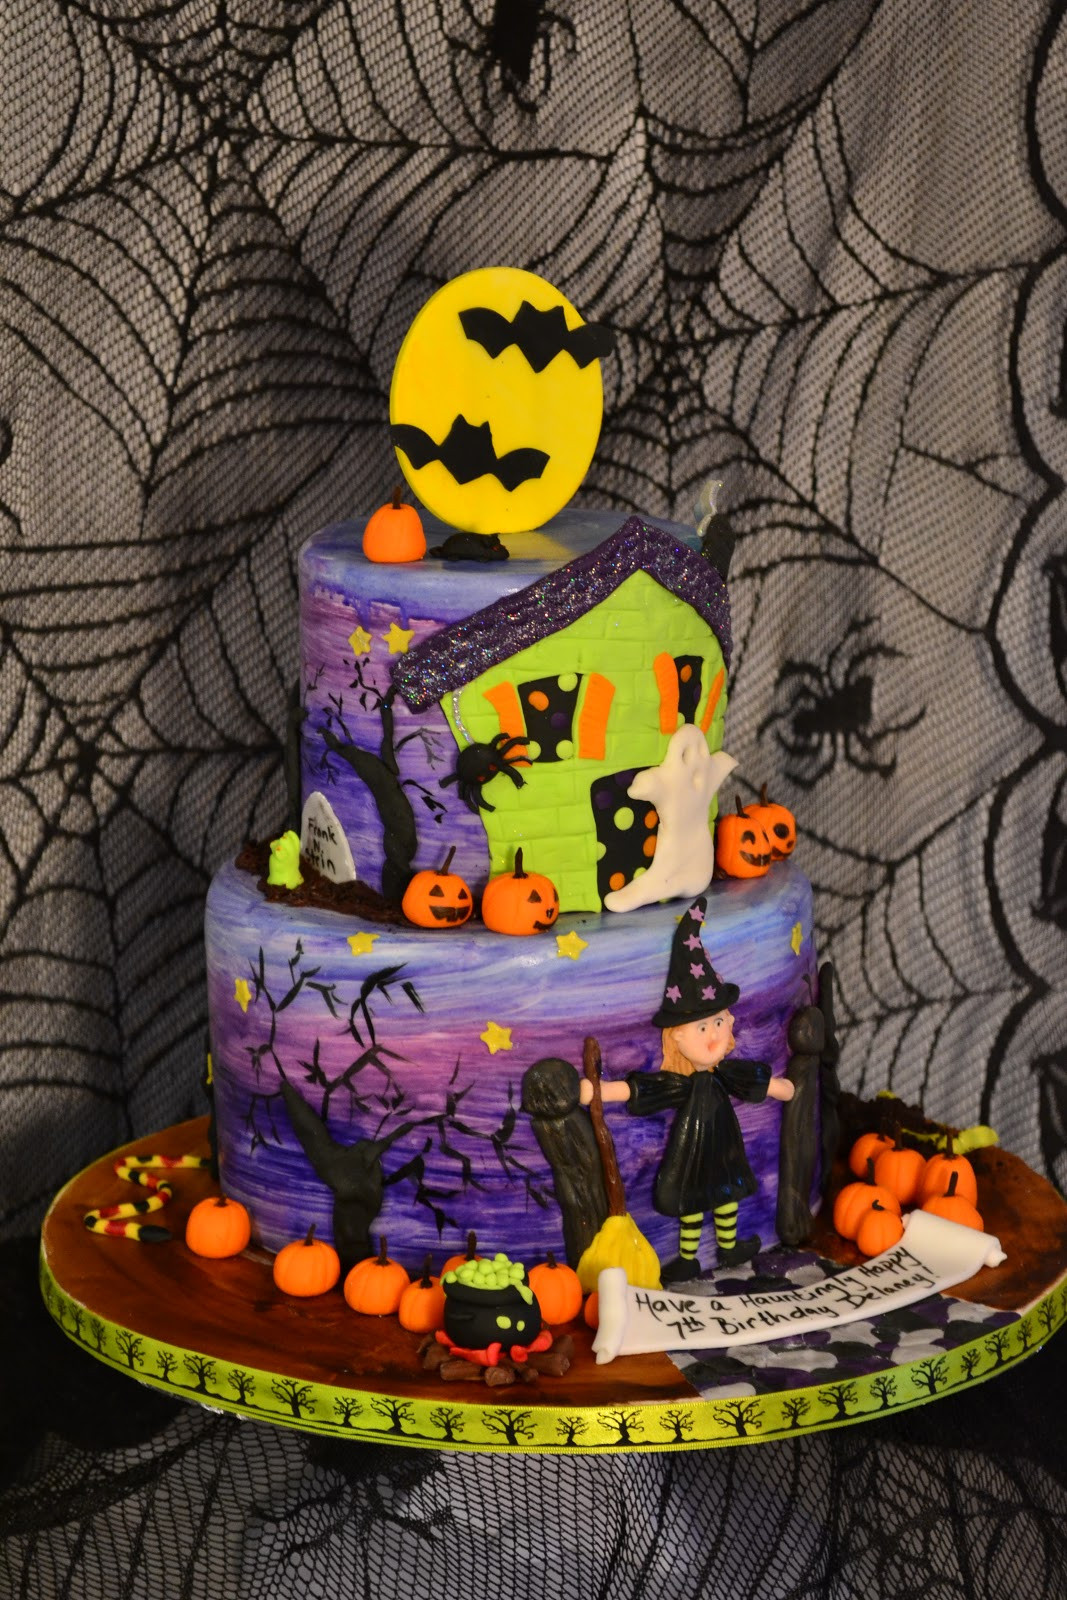 Halloween Party Cakes  Oh just put a cupcake in it Halloween birthday cake